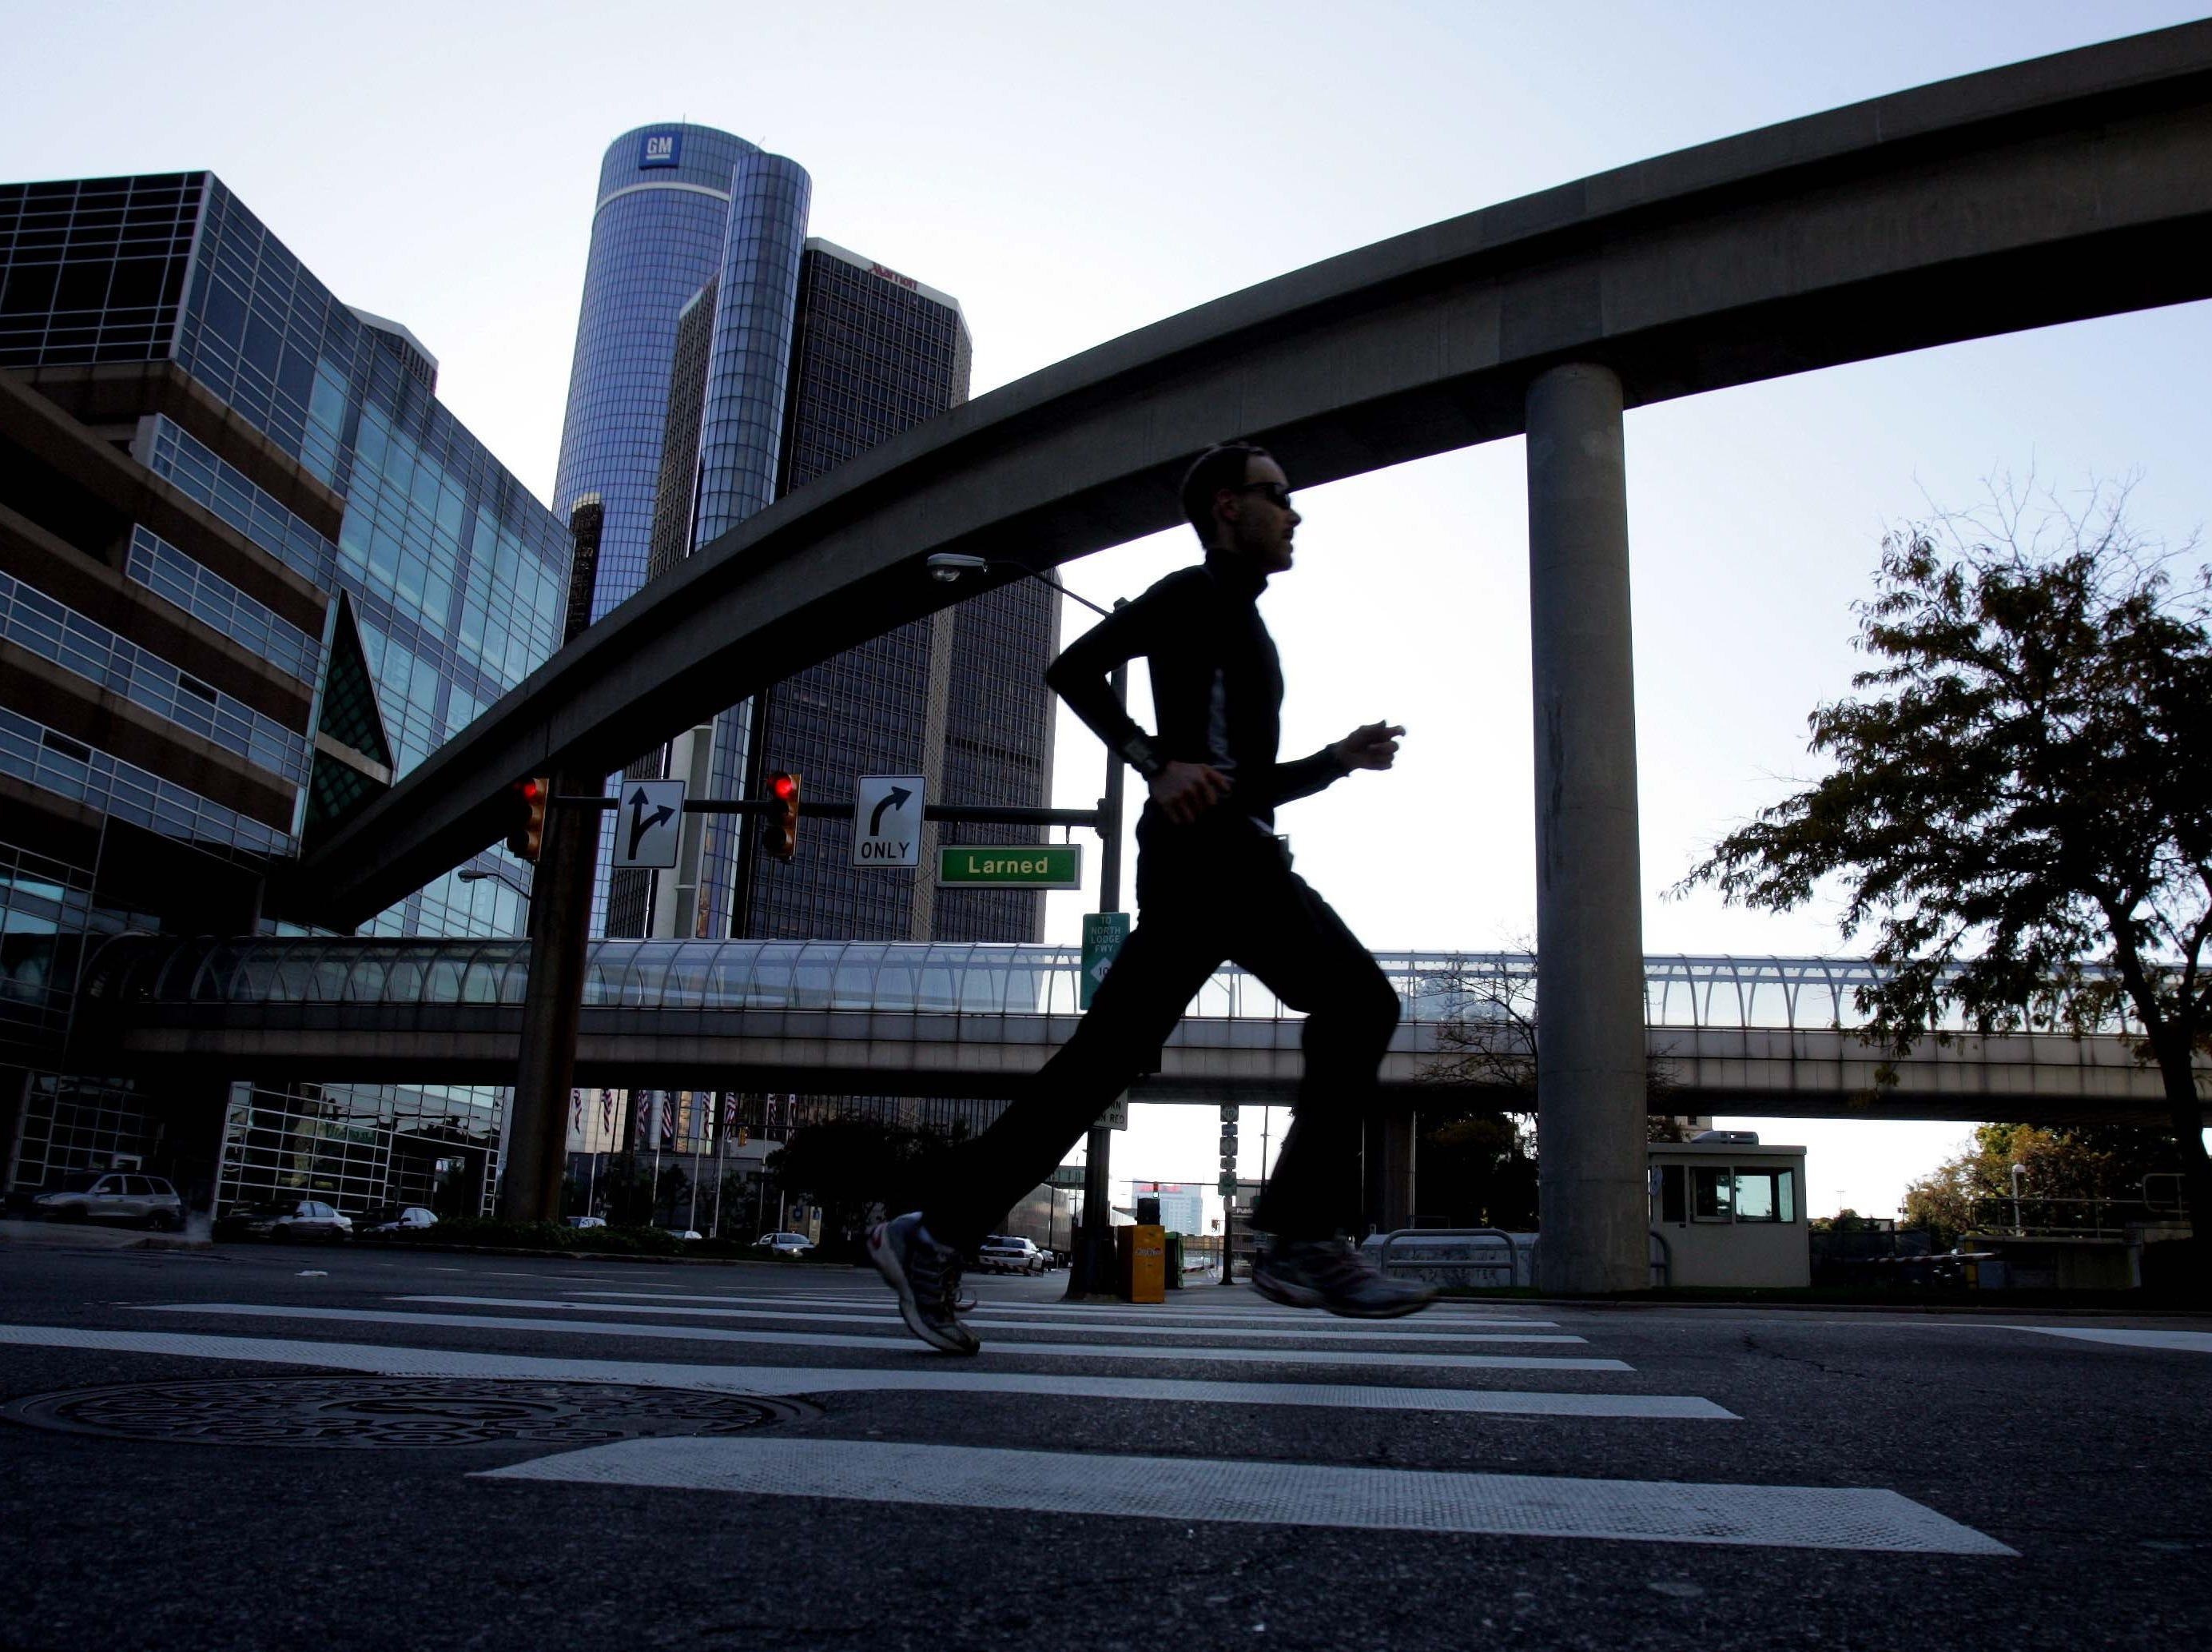 Runners come down Larned heading for mile marker 26 on Sunday October 18, 2009 in the Detroit Free Press/Flagstar Bank Marathon.